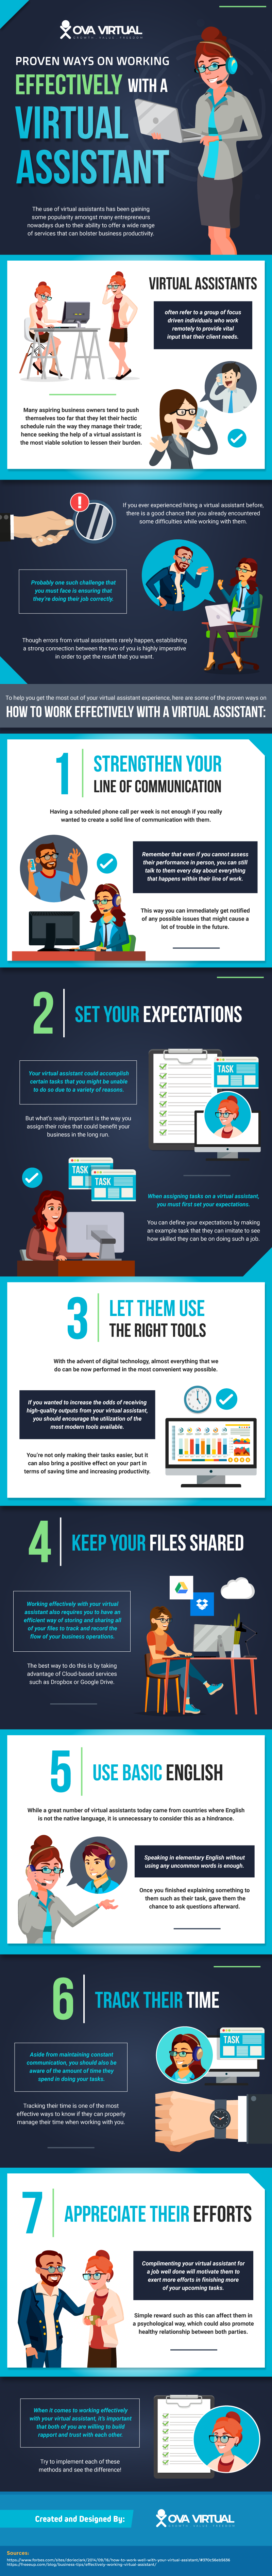 Proven Ways on Working Effectively with a Virtual Assistant - Infographic